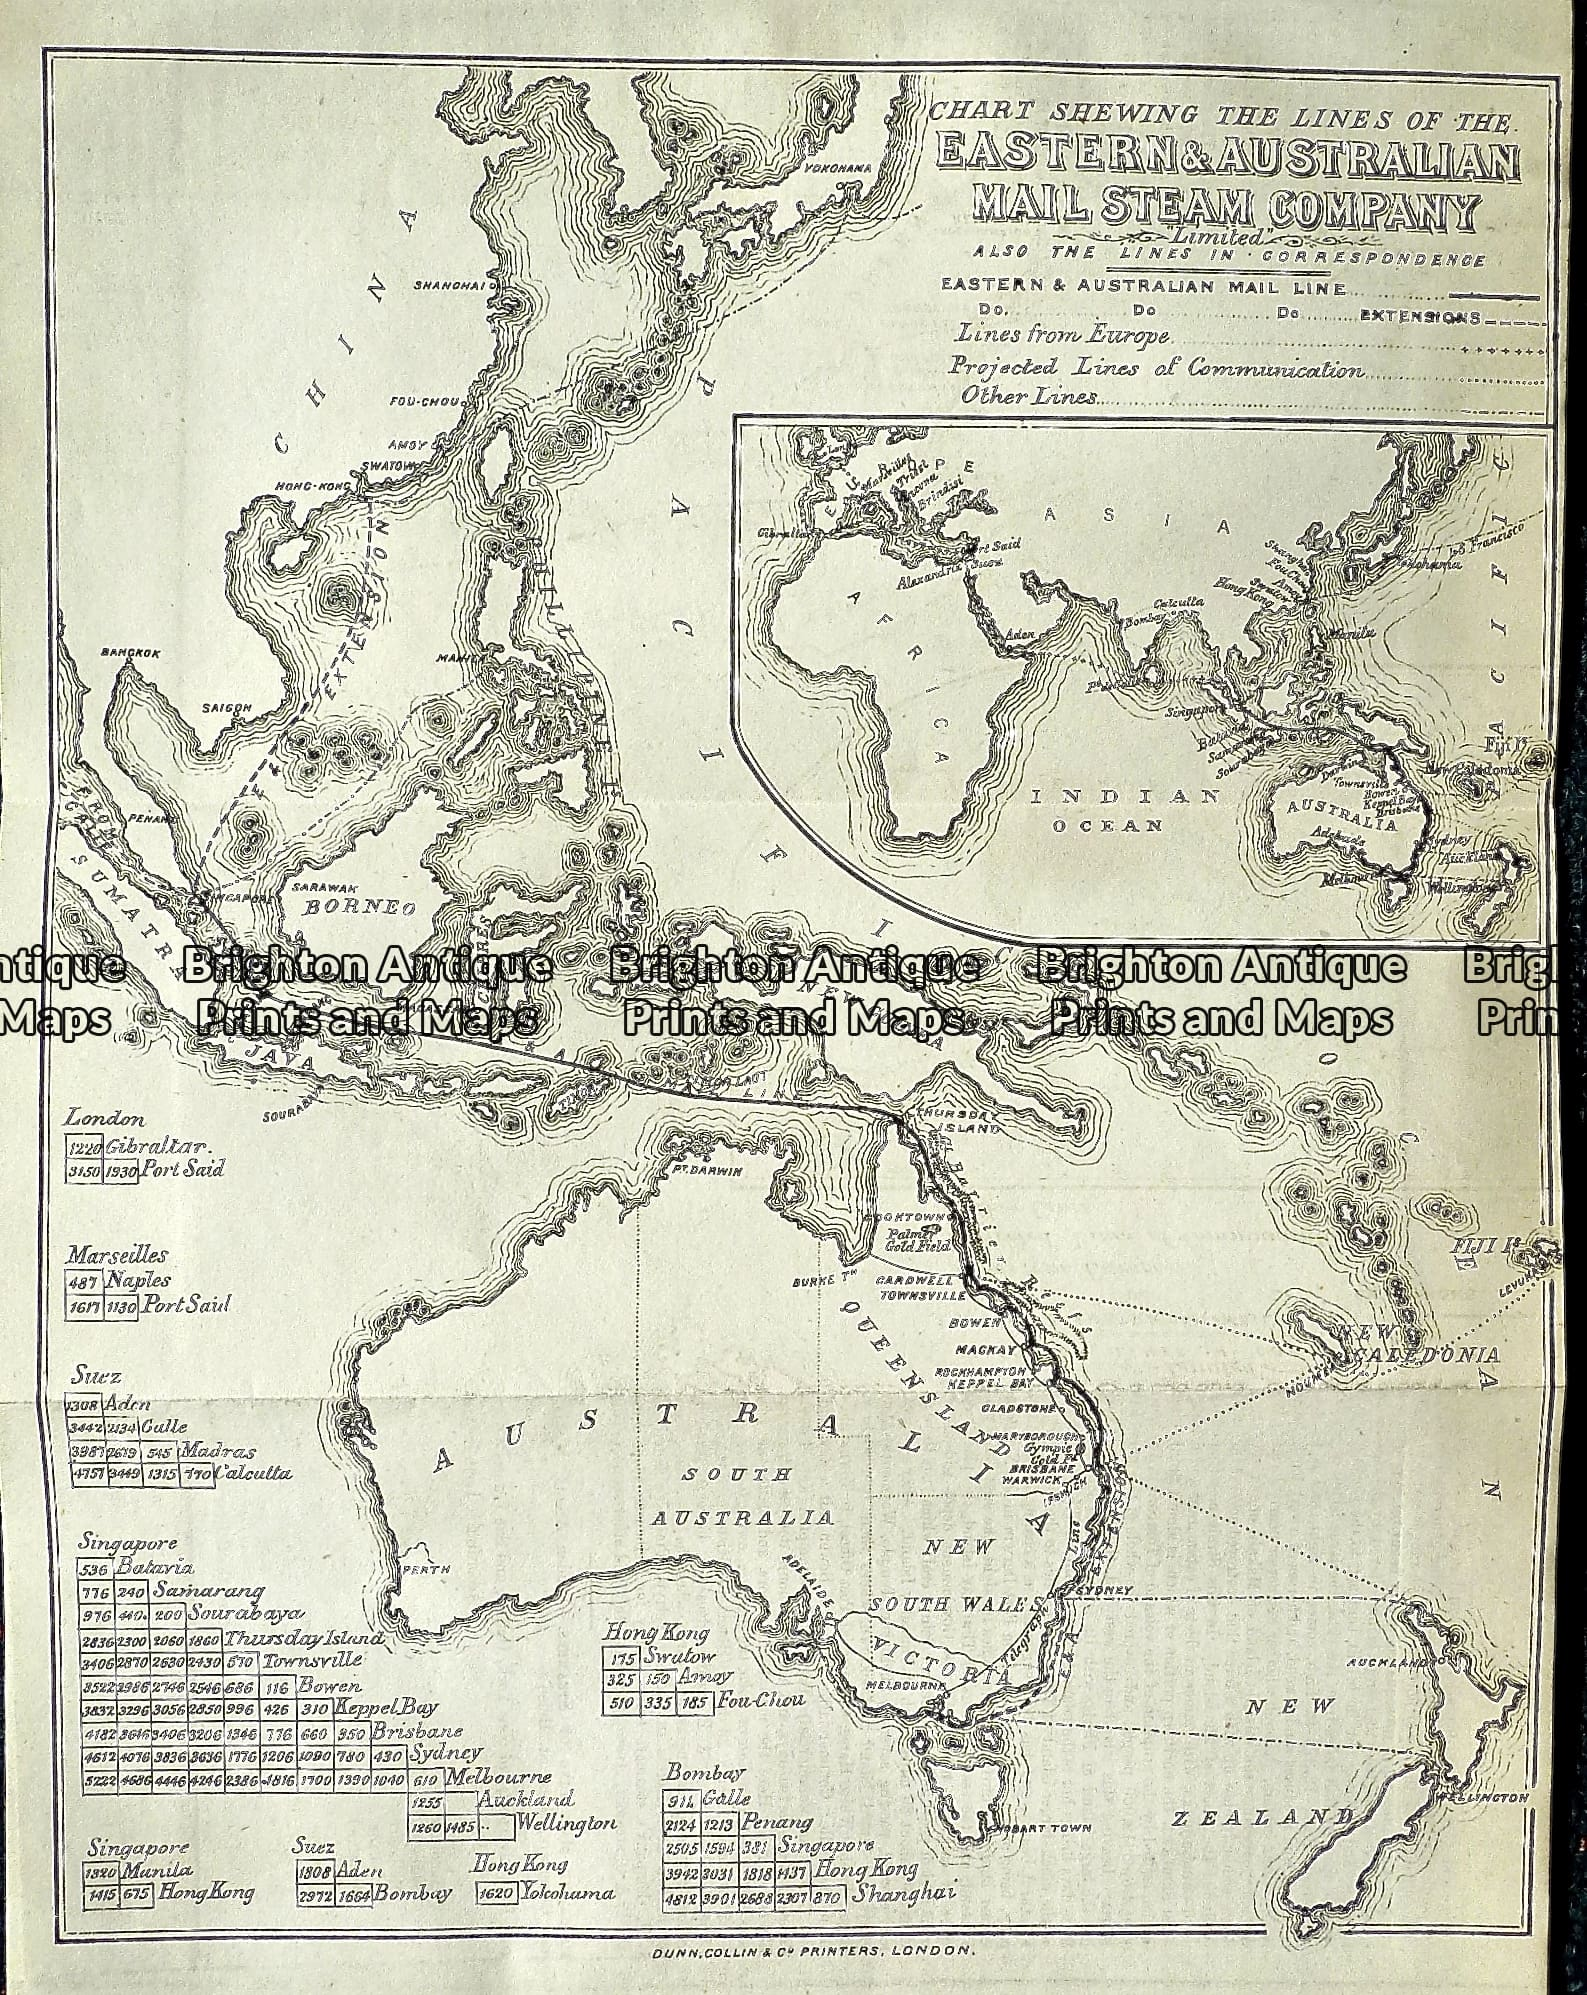 Map Of Australia To Buy.Antique Map Eastern Australian Mail Line C 1890 Ref 232 892 Brighton Antique Prints And Maps Shop Buy Now